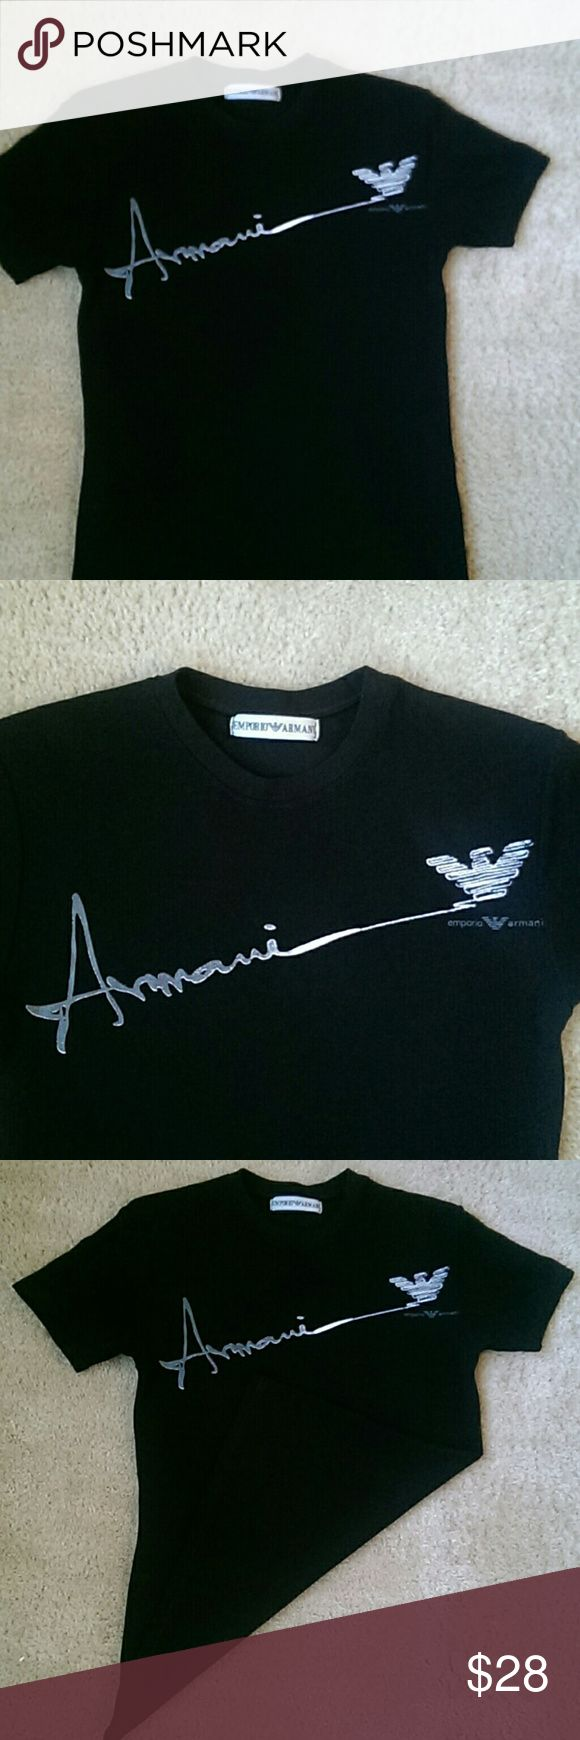 Emporio Armani Emporii Armani shirt ready to me mailed out. Emporio Armani Shirts Tees - Short Sleeve